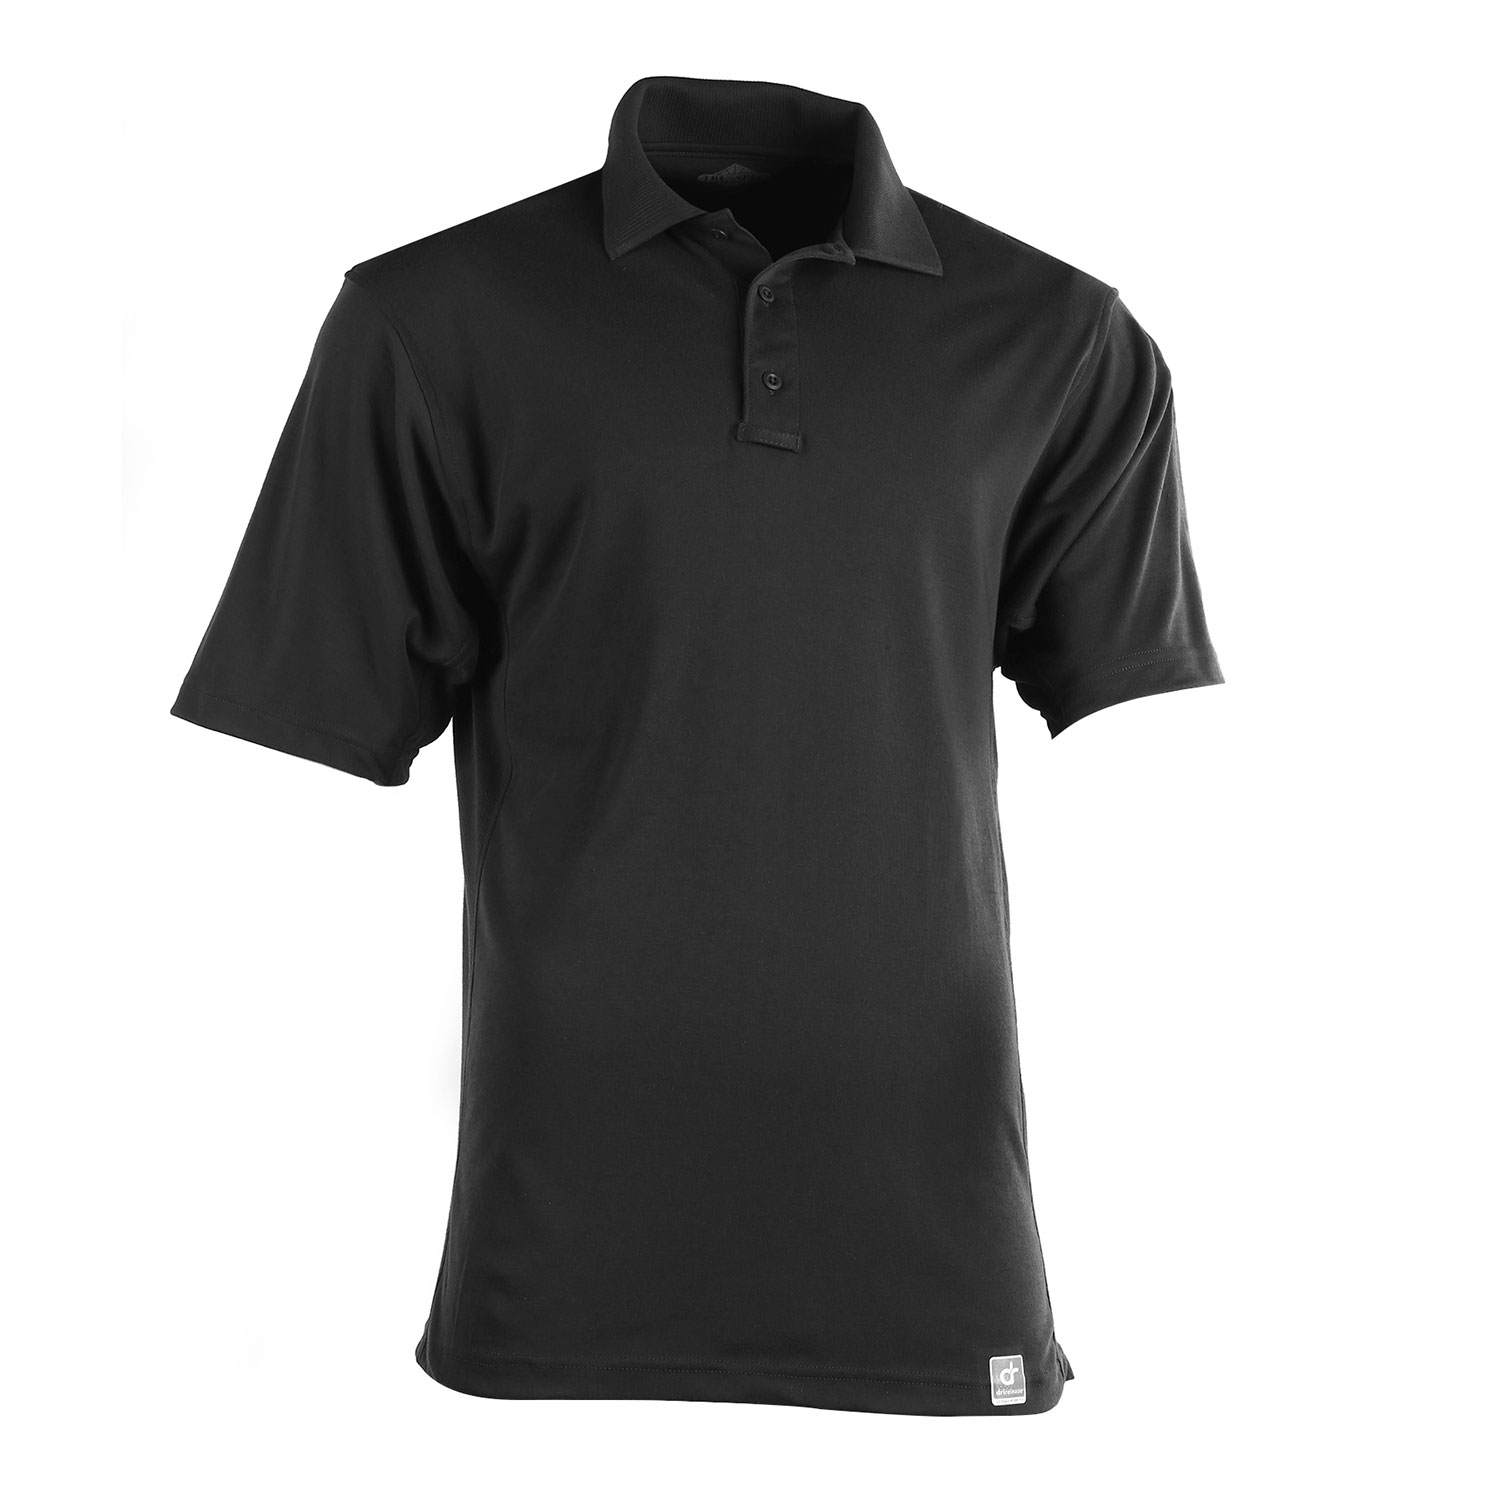 TRU-SPEC 24-7 Series Drirelease Polo